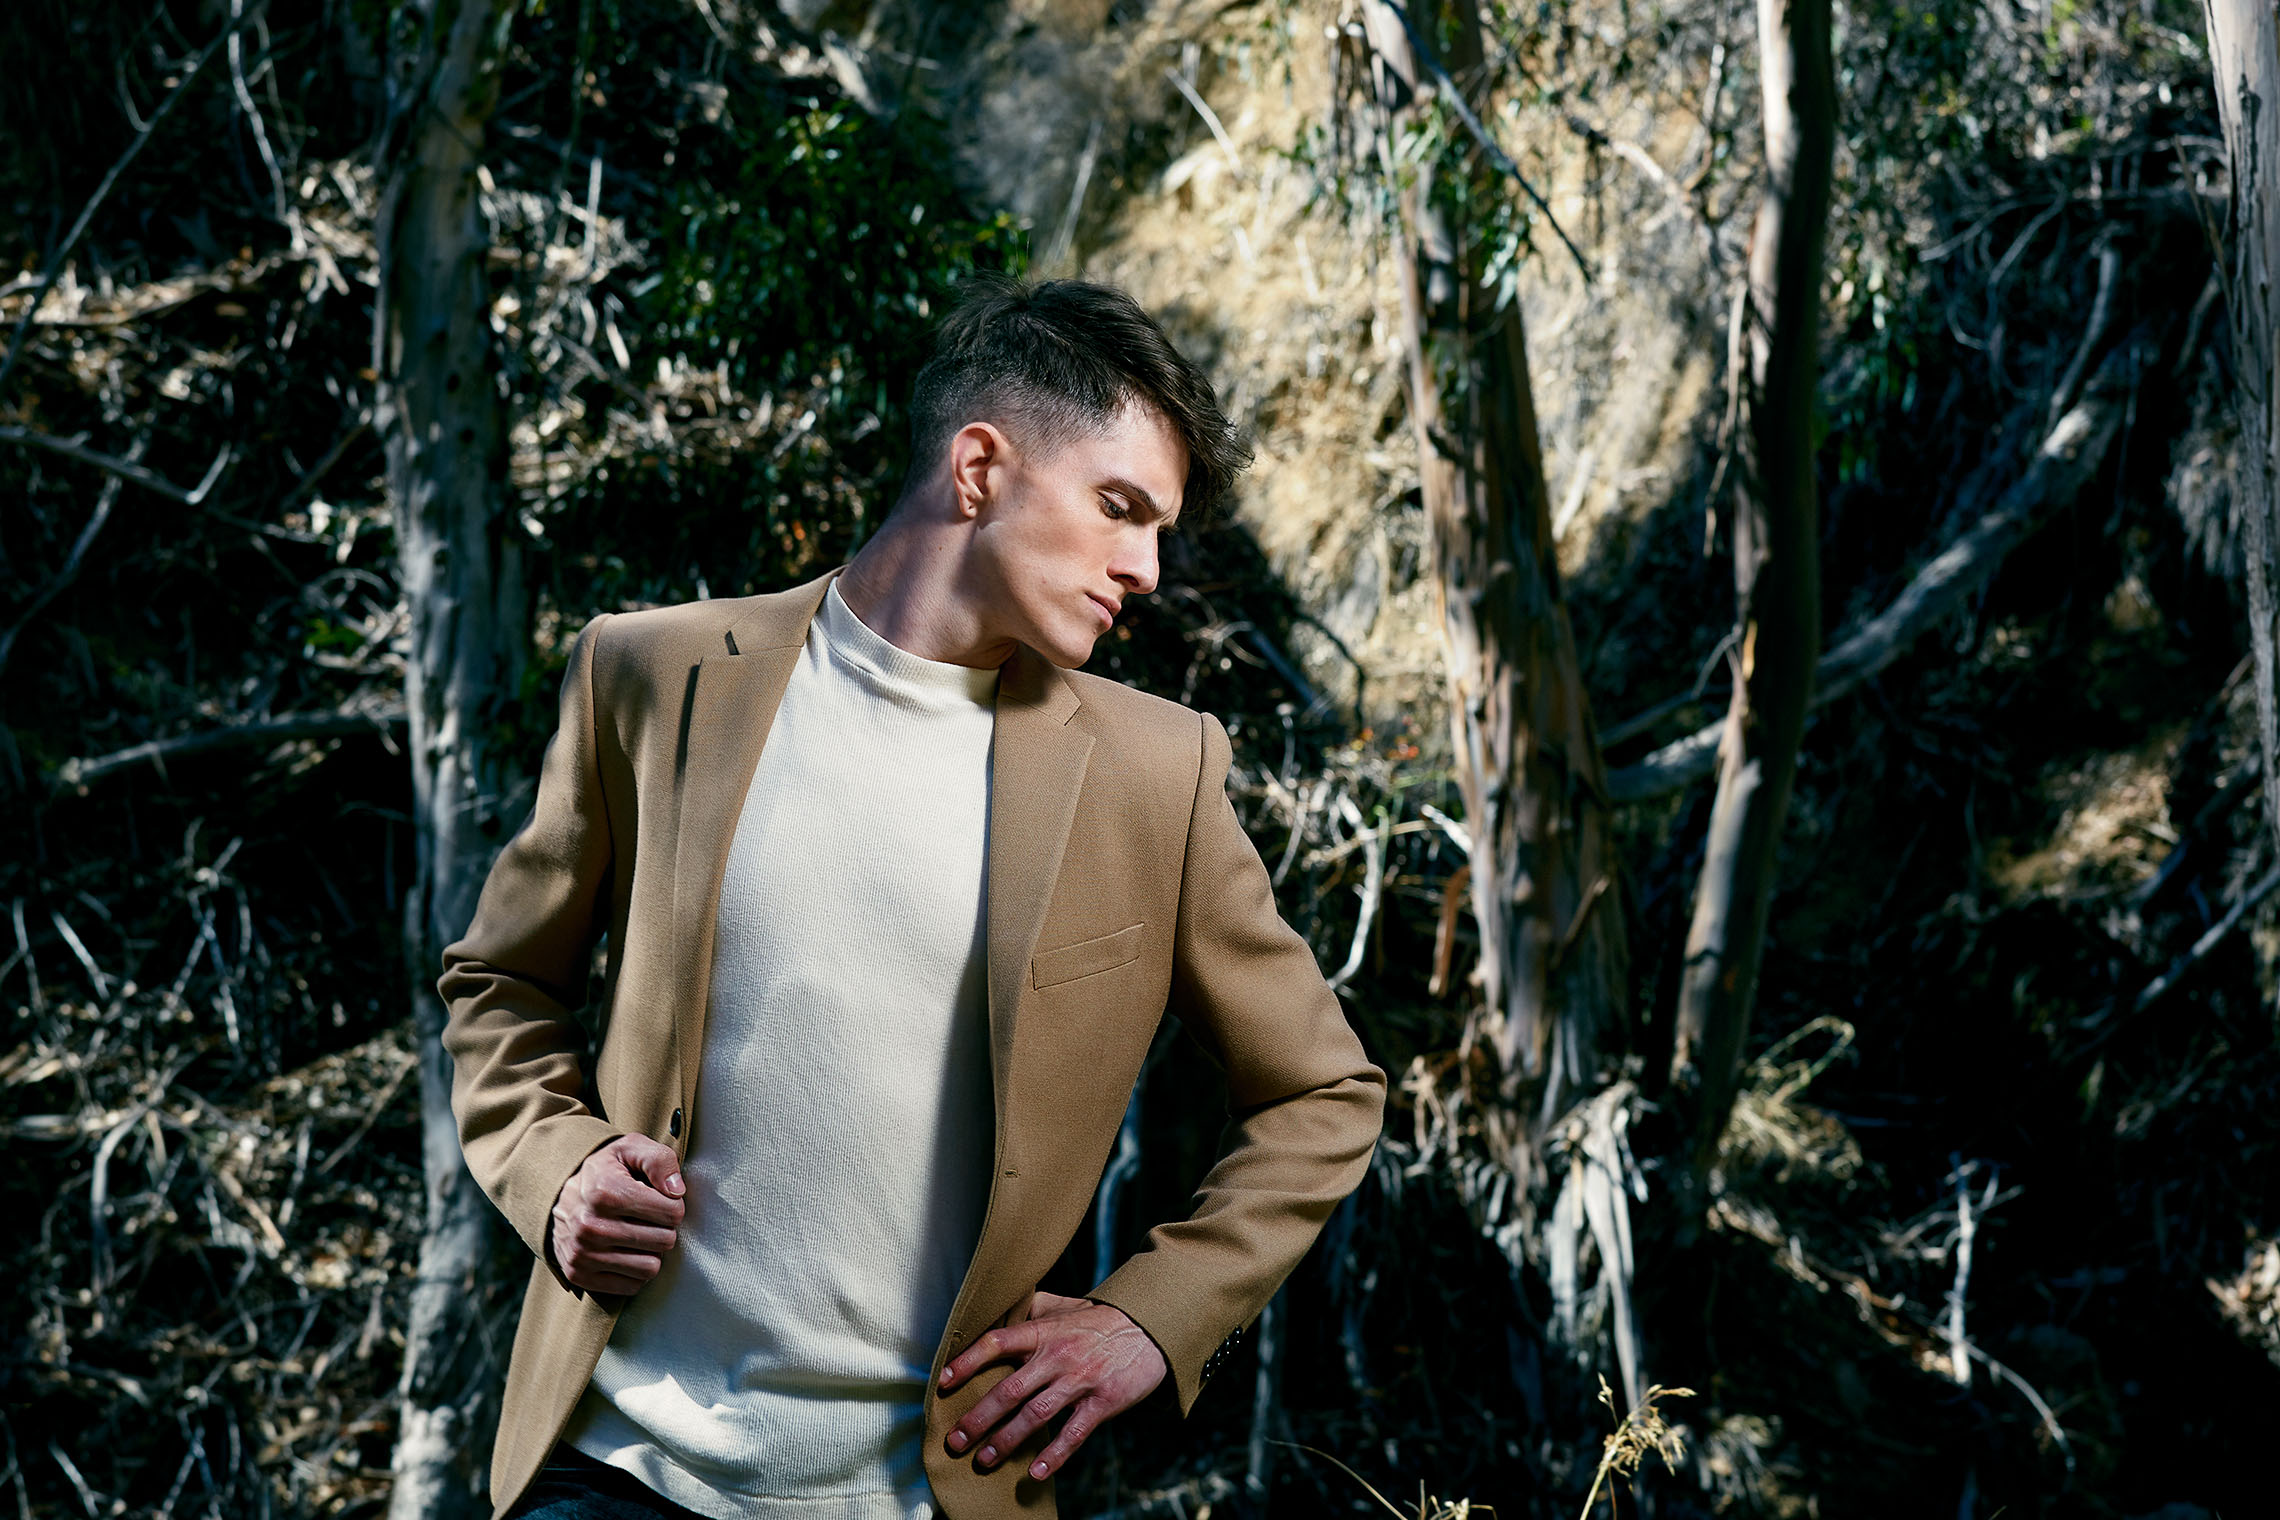 man in stylish jacket in the woods near LA, looking pensively, fashion and accessories shoot by Robert Wilde, LA and New York